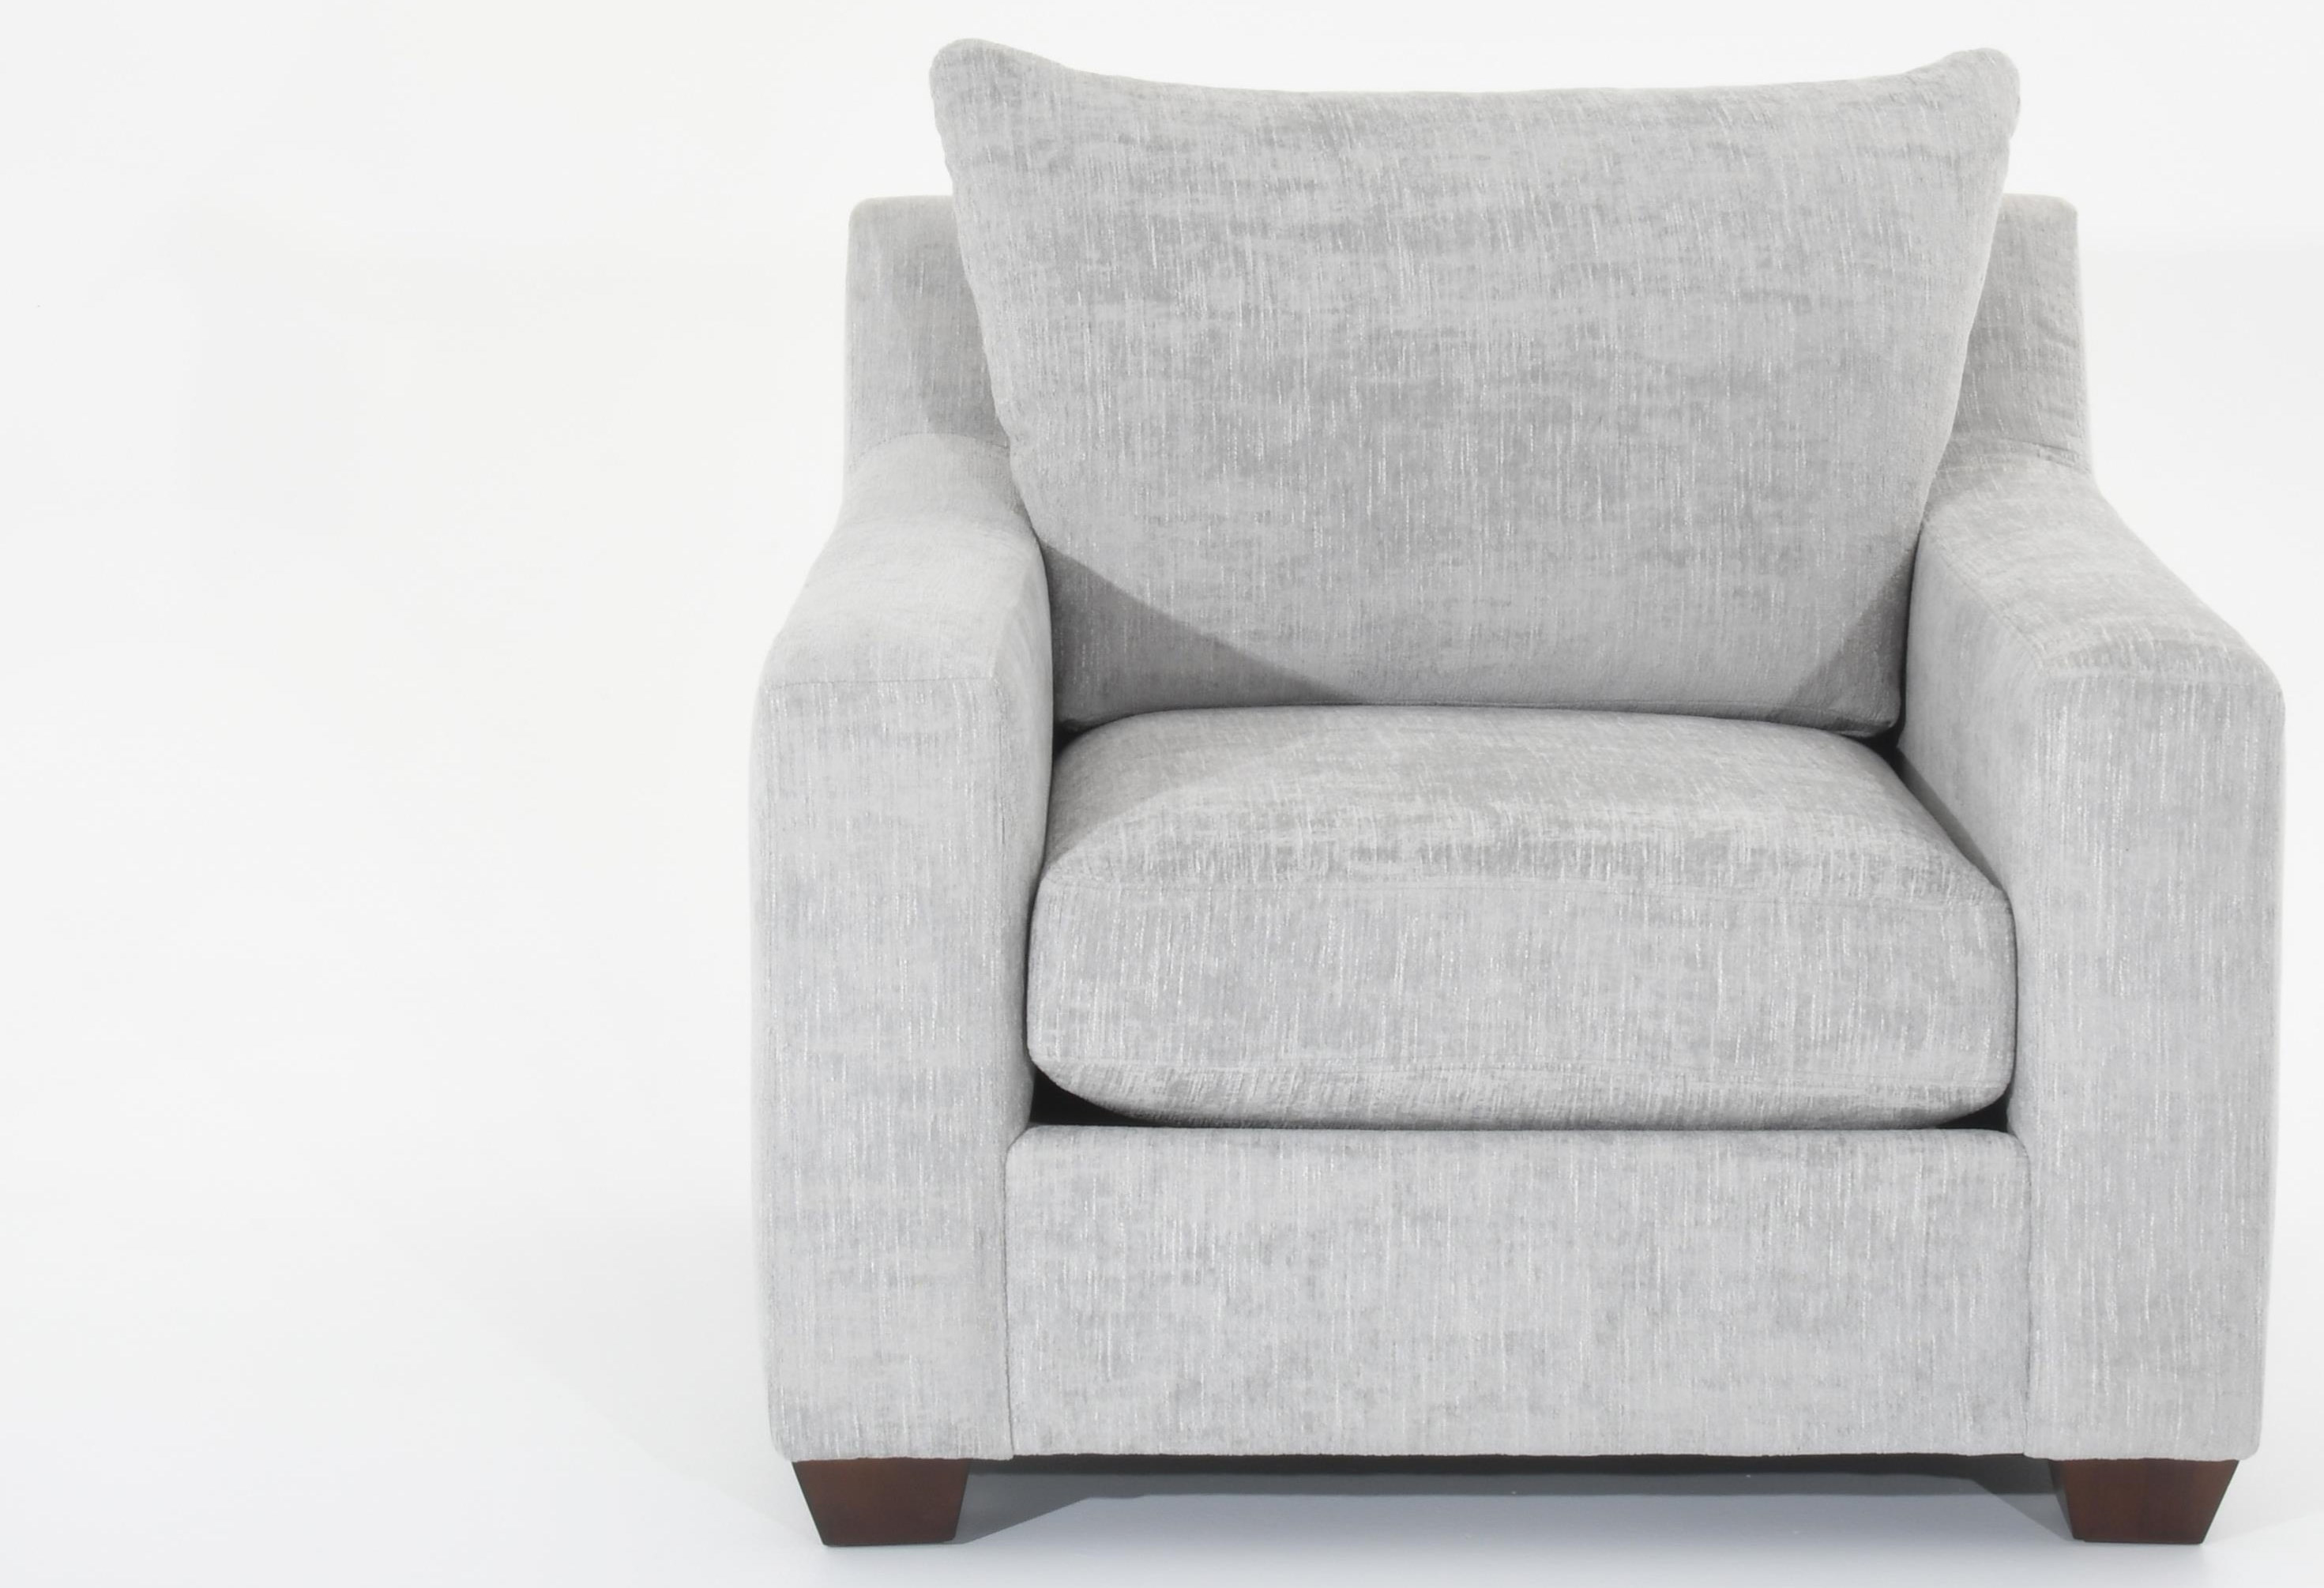 Multiple Choices Customizable Chair by Precedent at Baer's Furniture